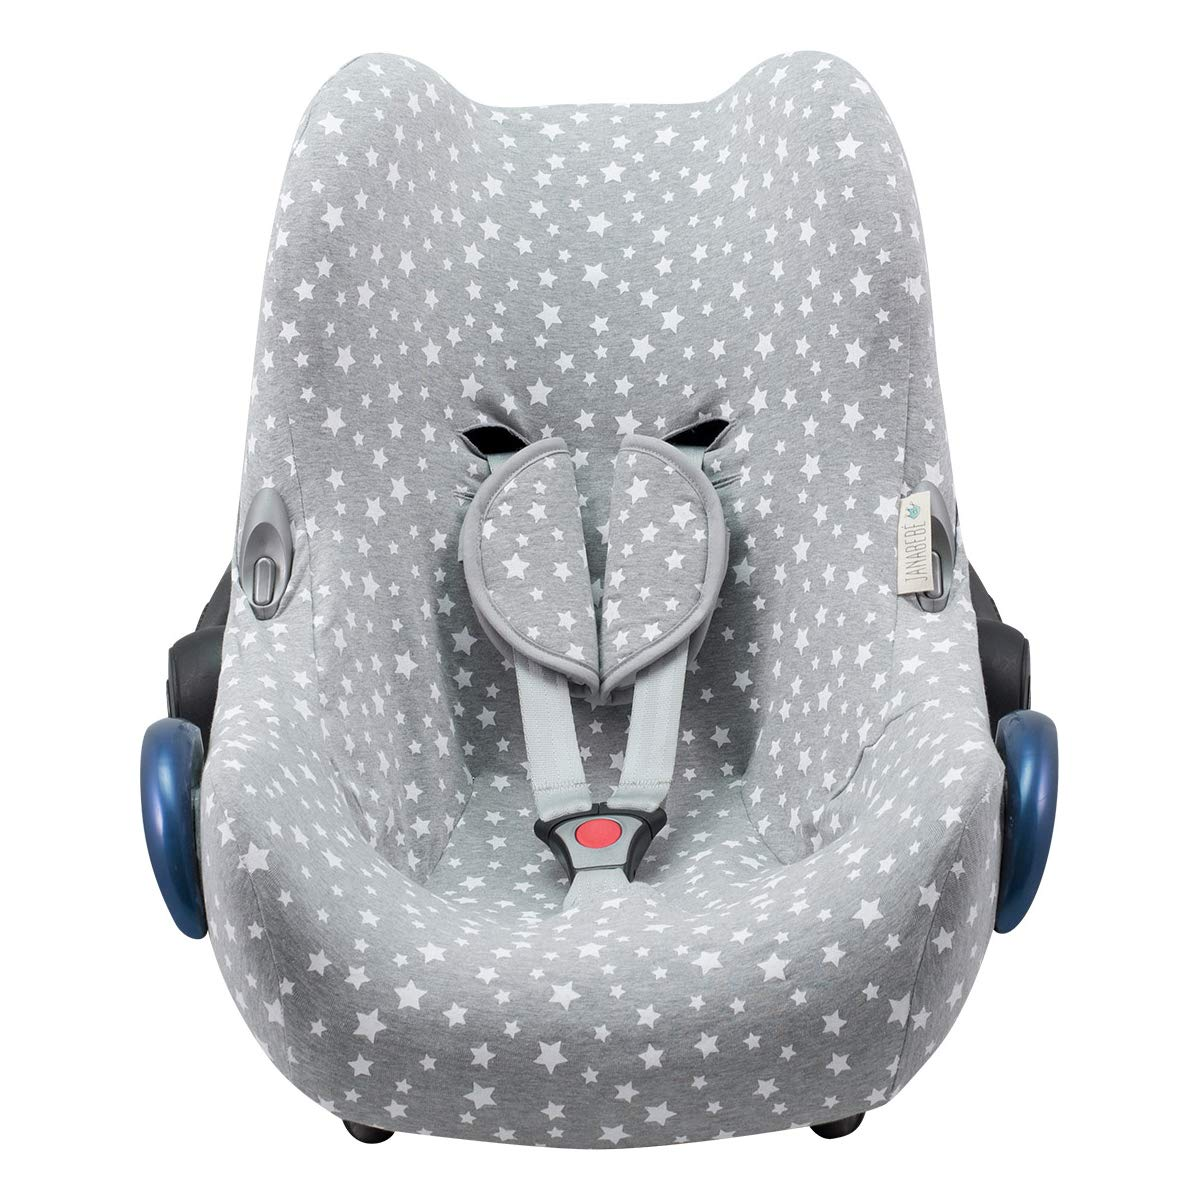 JANABEBE Cover Liner Compatible with Maxi Wholesale City COSI Cabriofix Popular standard